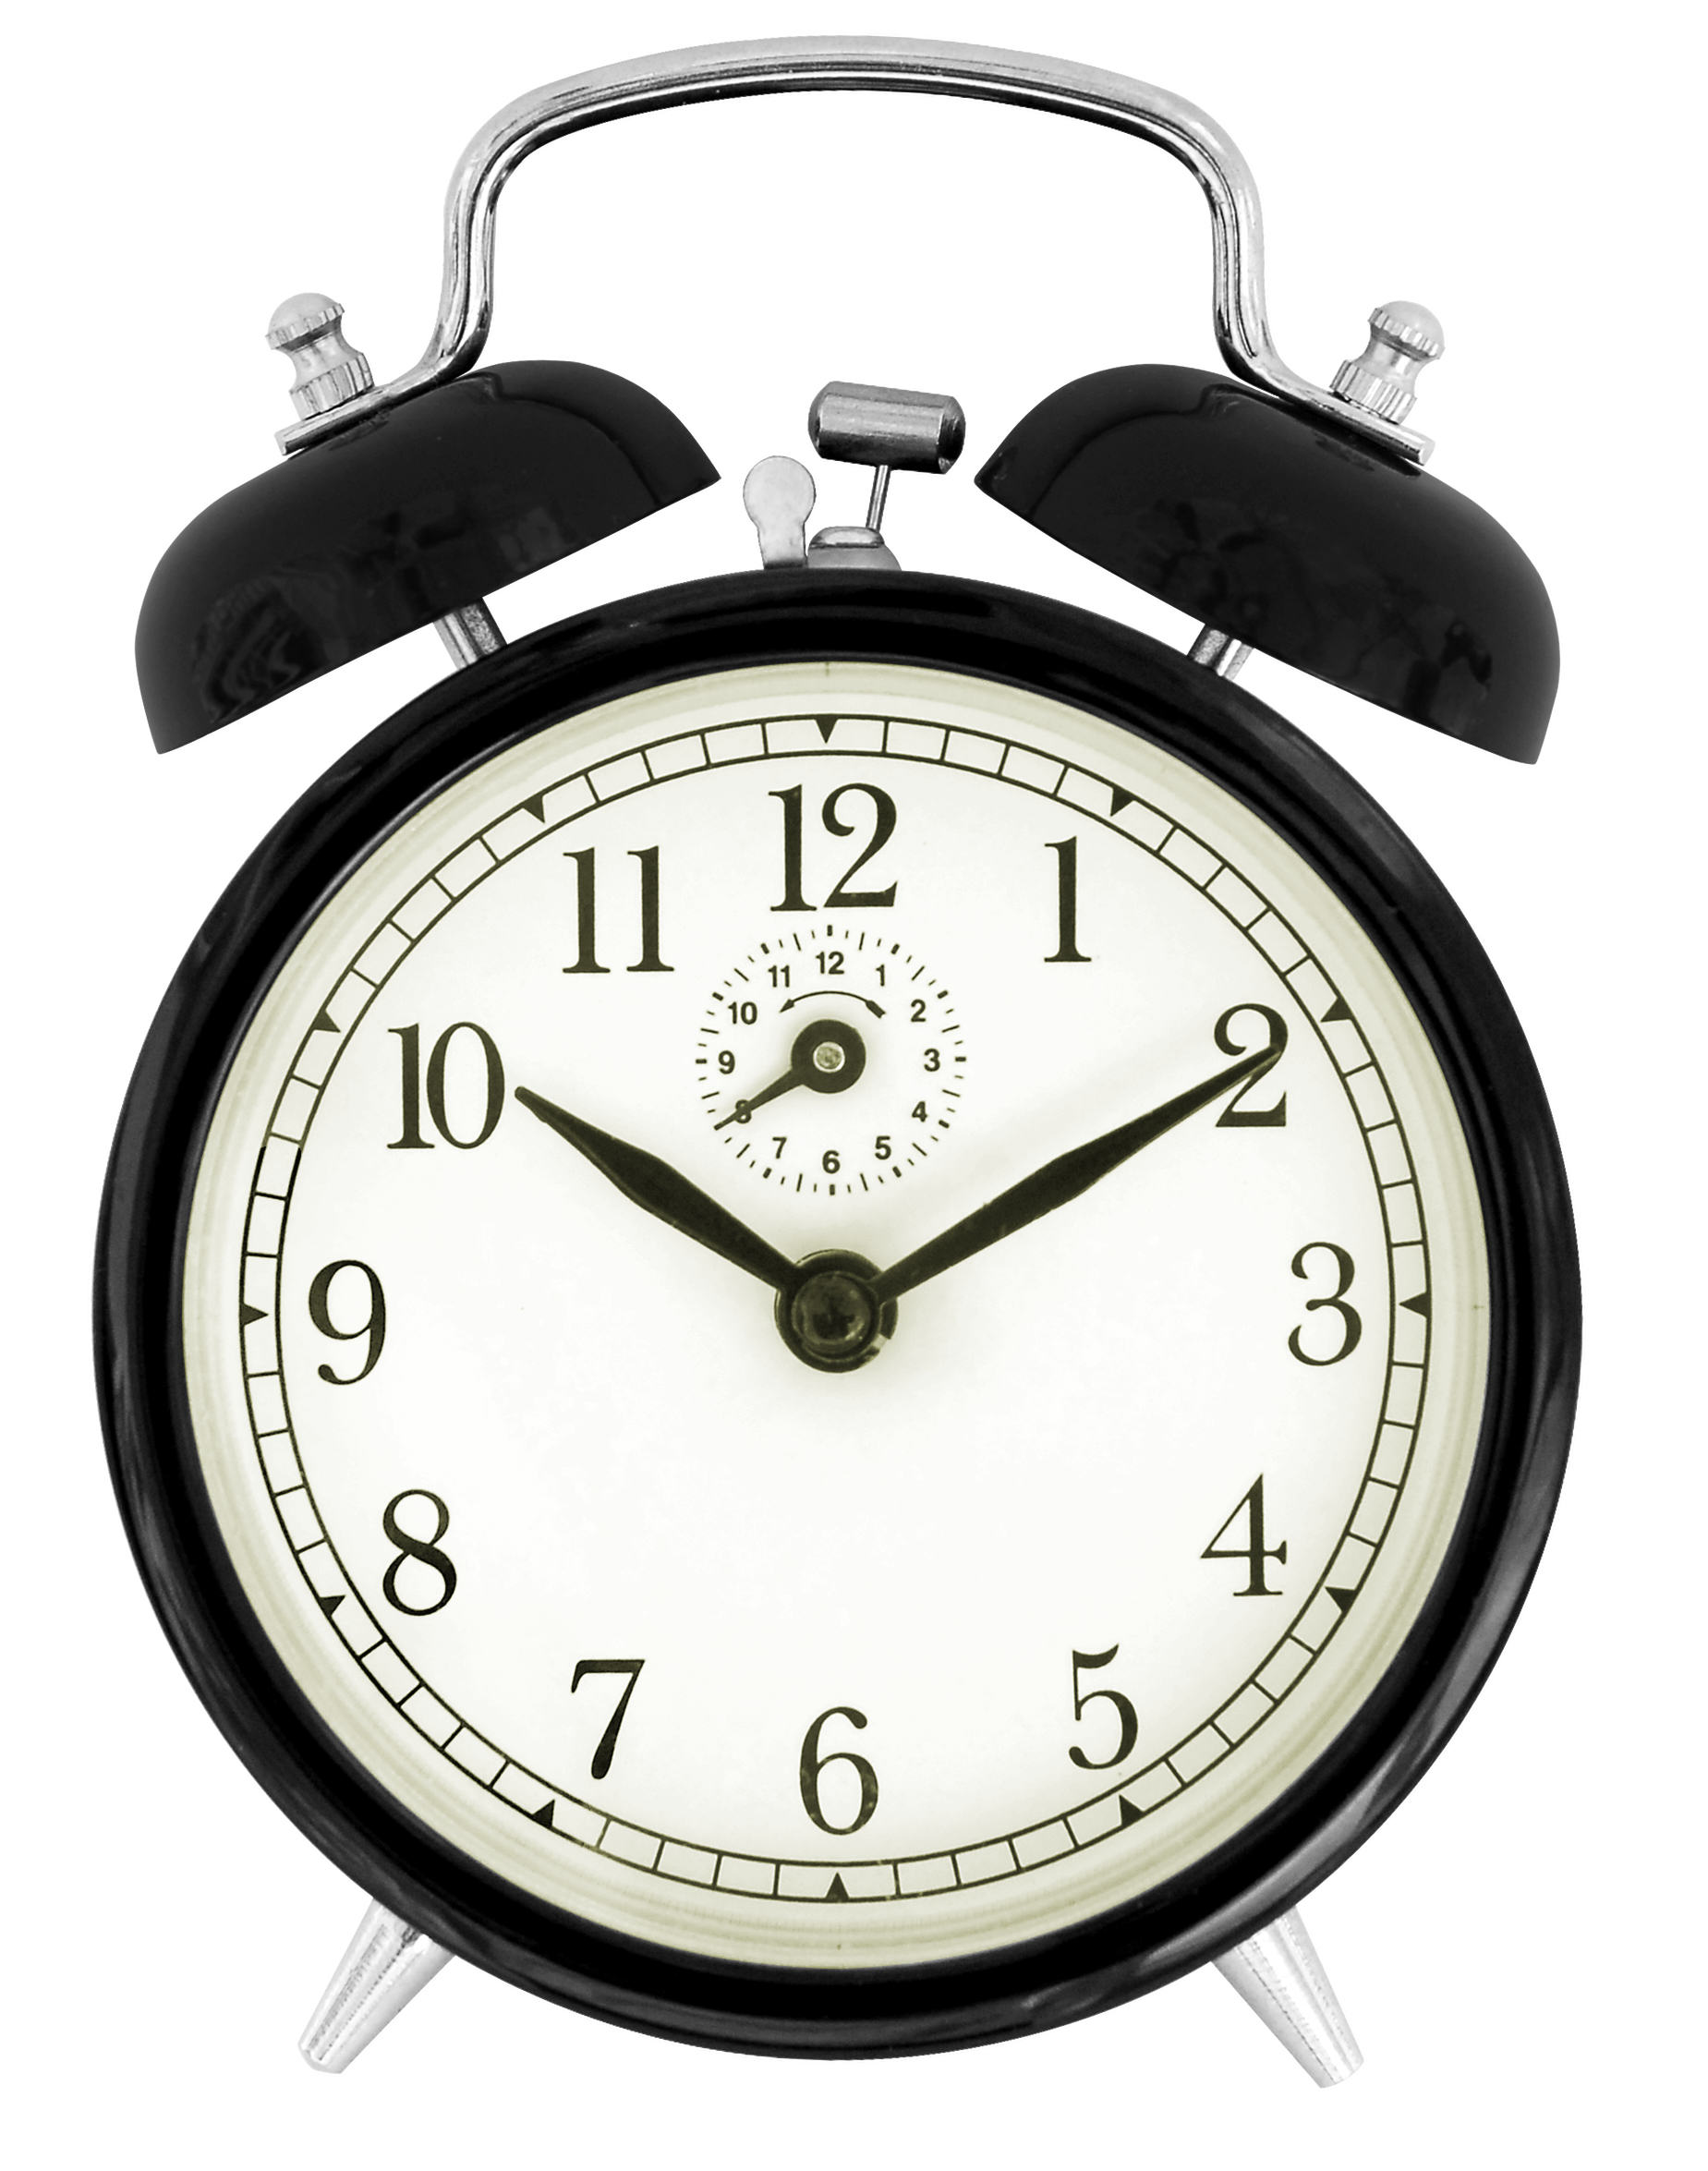 Two Students In America Are Charged With A Felony For Alarm Clock Prank 245